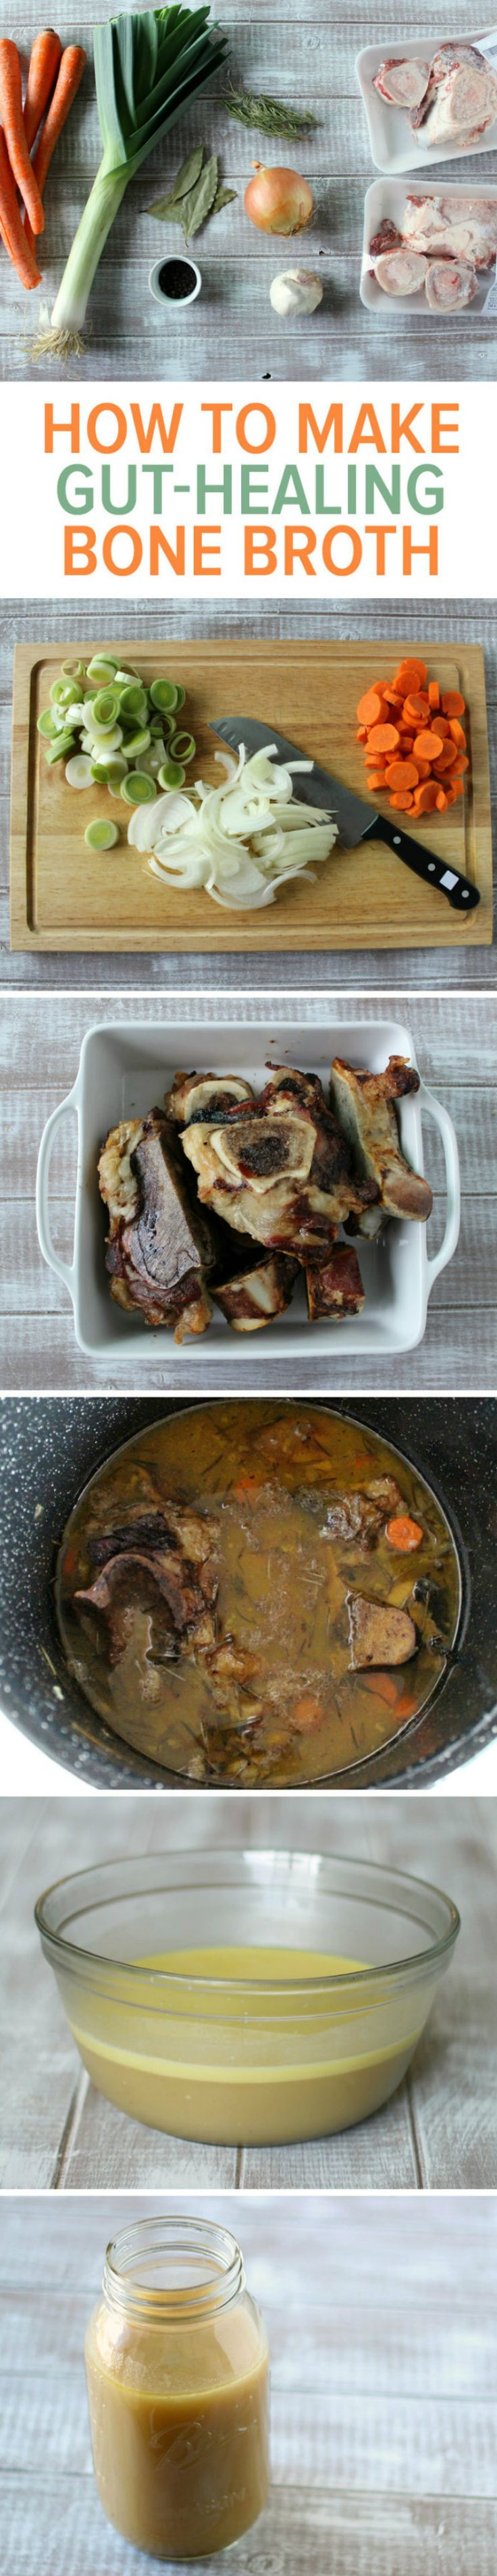 This bone broth recipe is the only one you will ever need, and is naturally filled with minerals and healing properties to keep your gut and immune system healthy.